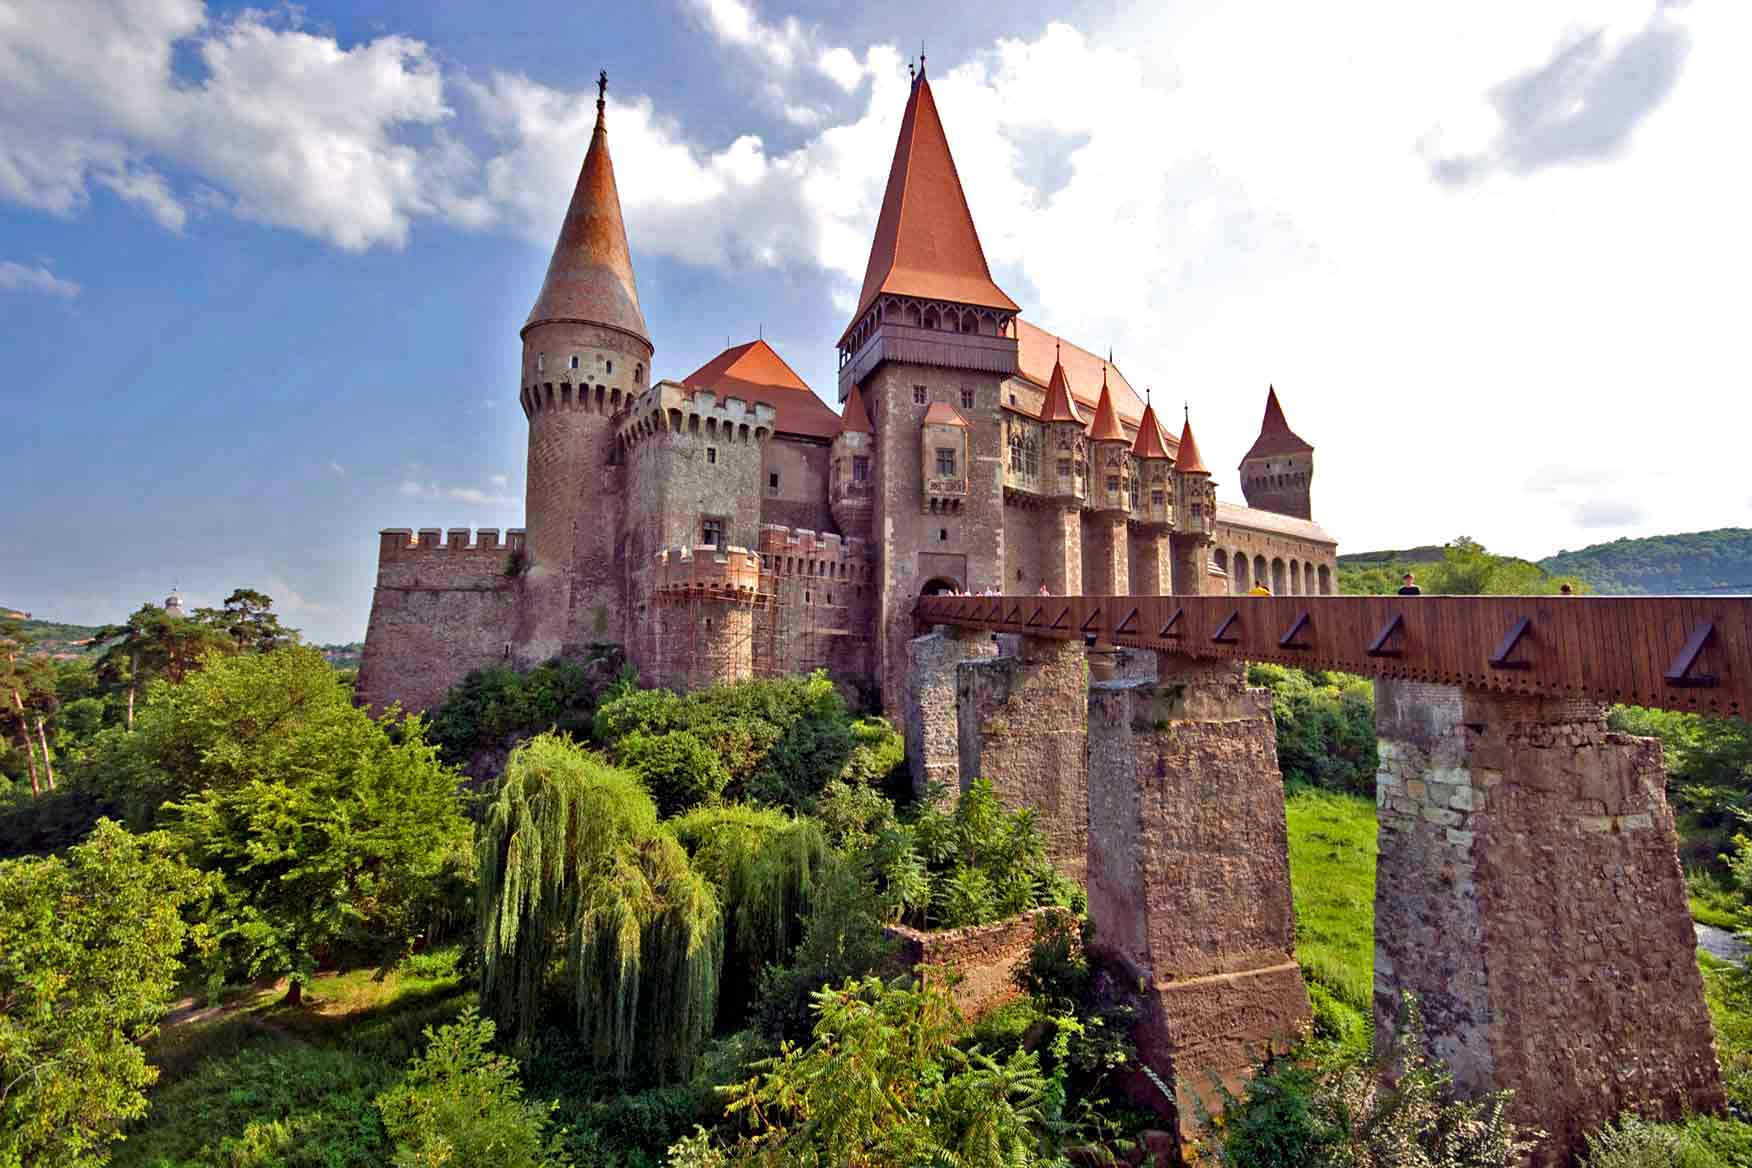 fortified churches romania castles, fortresses | culture trip romania photos